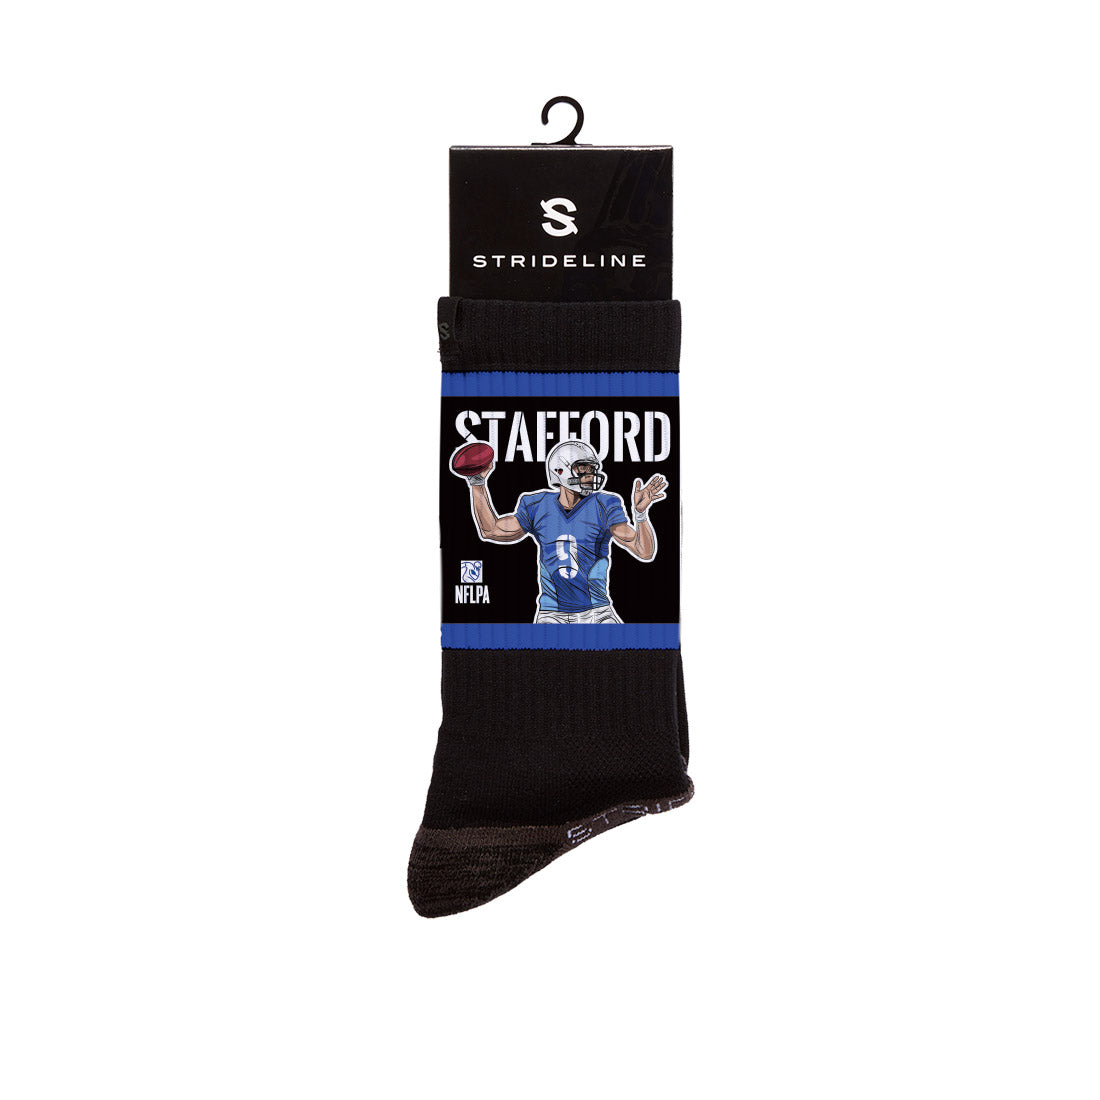 Matthew Stafford Goes Deep Black Crew Socks